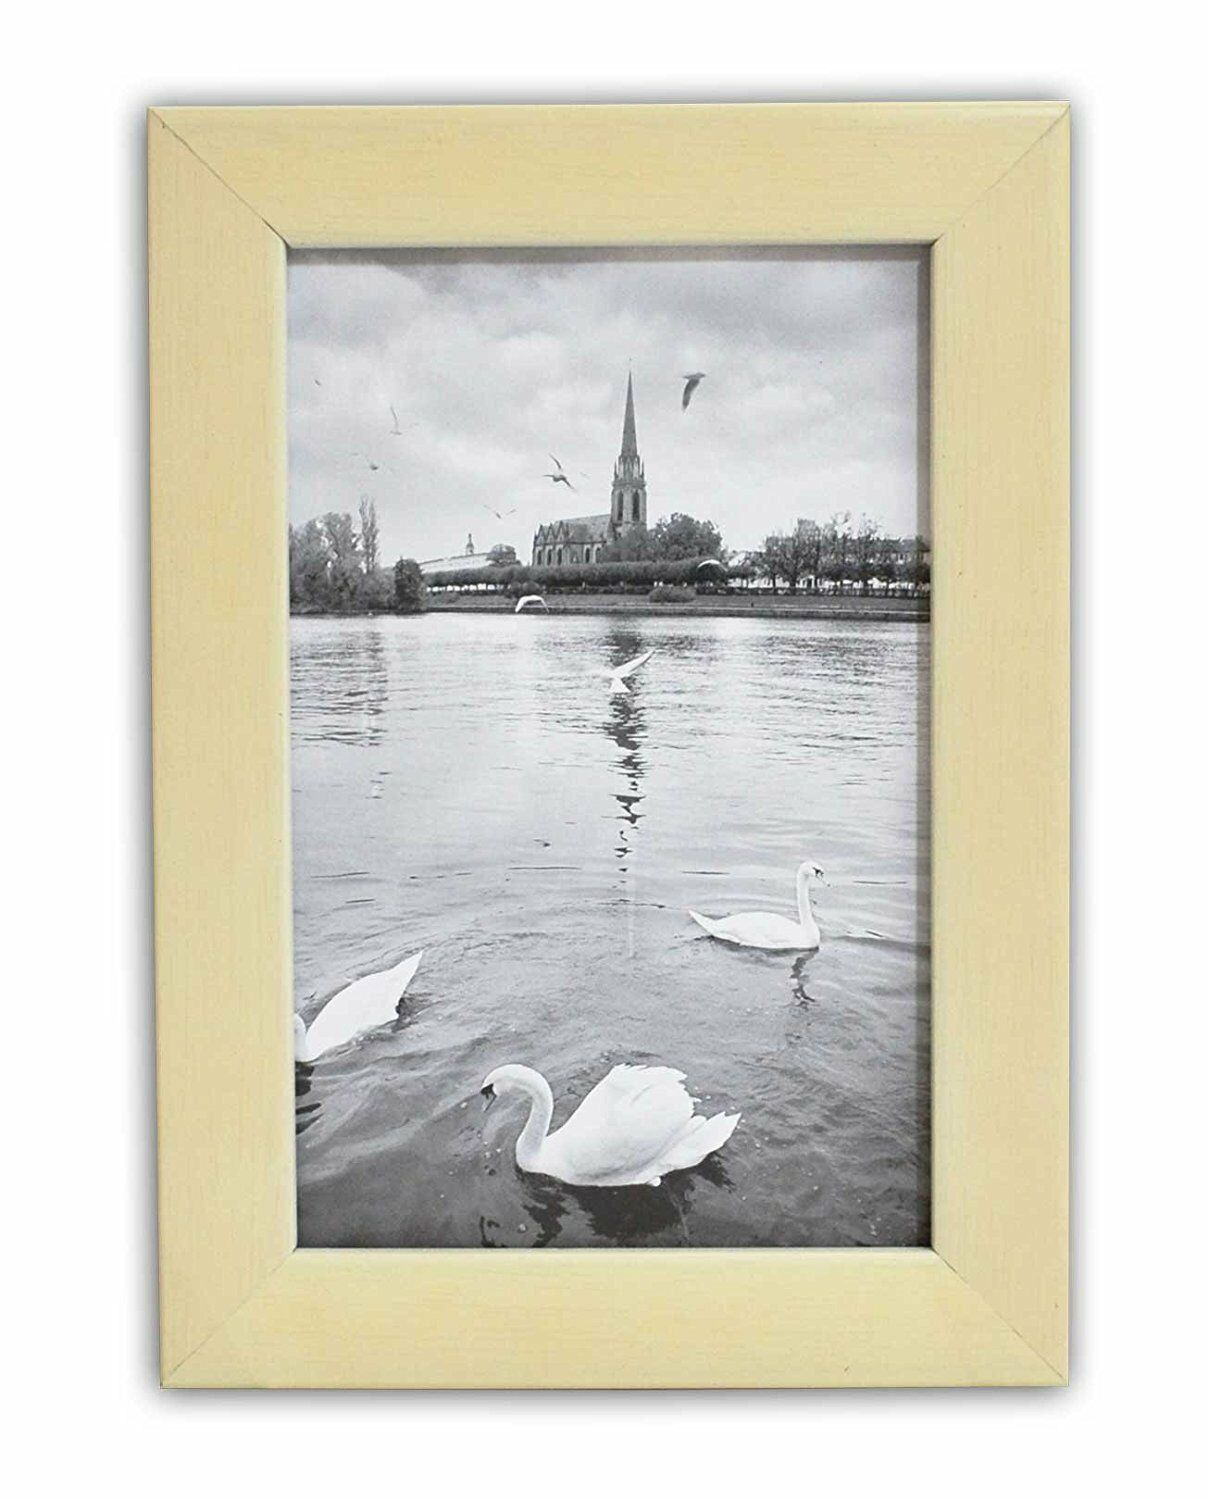 Golden State Art, 5x7 Cream Color Wood Swan Photo Frame with